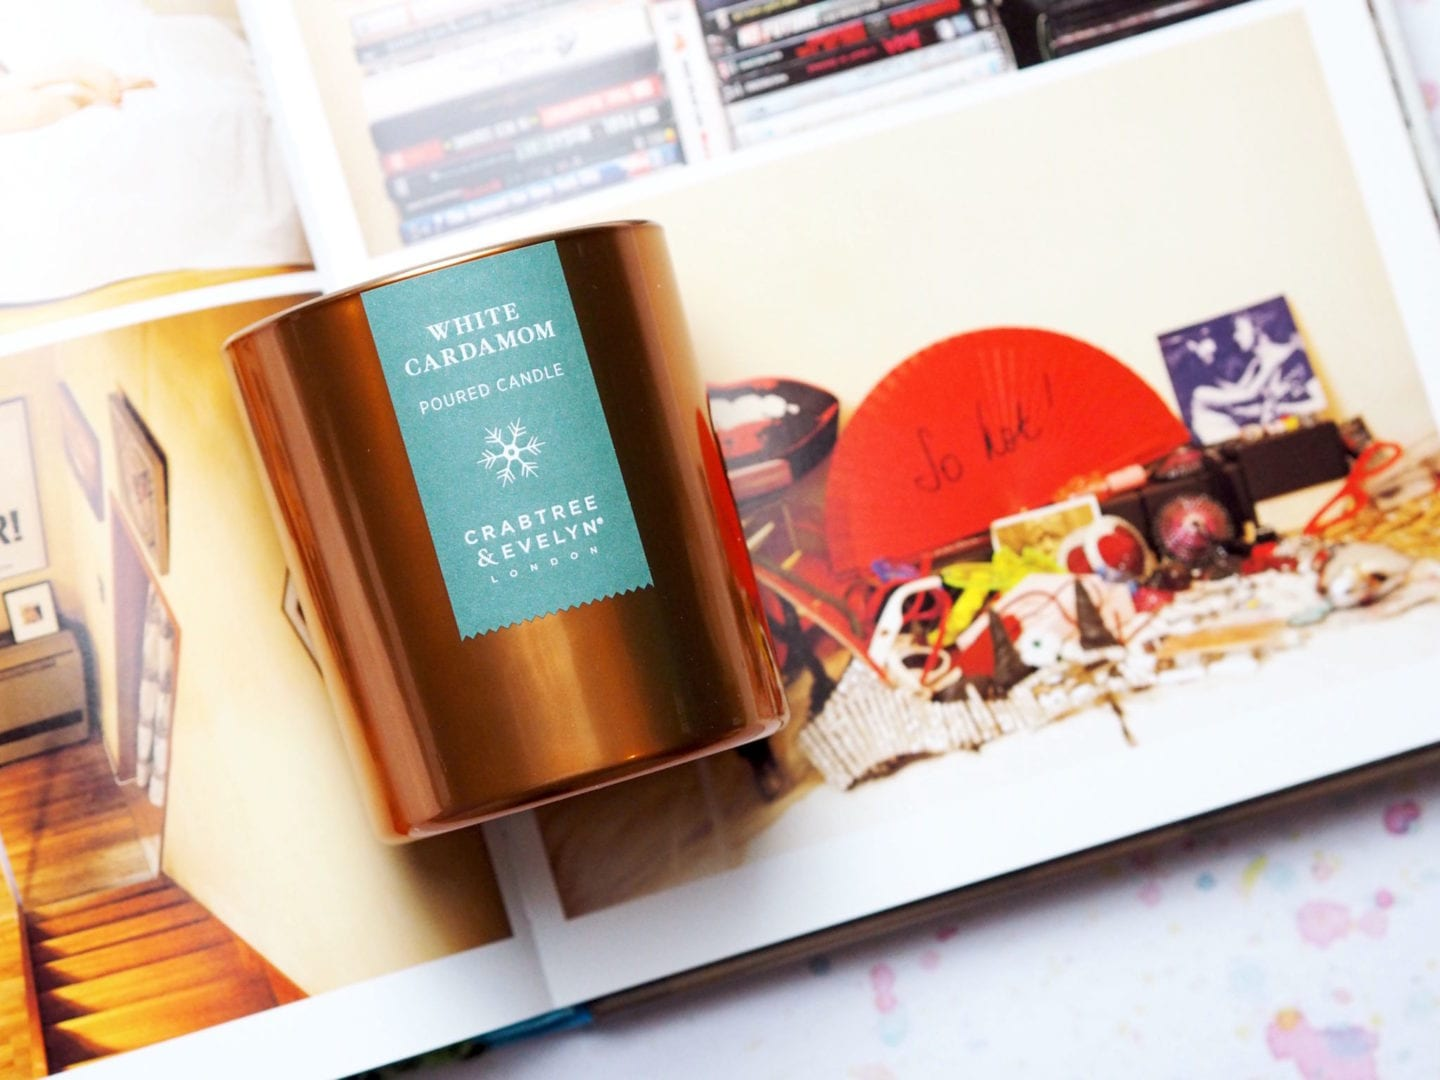 Crabtree-Evelyn-White-Cardamom-candle